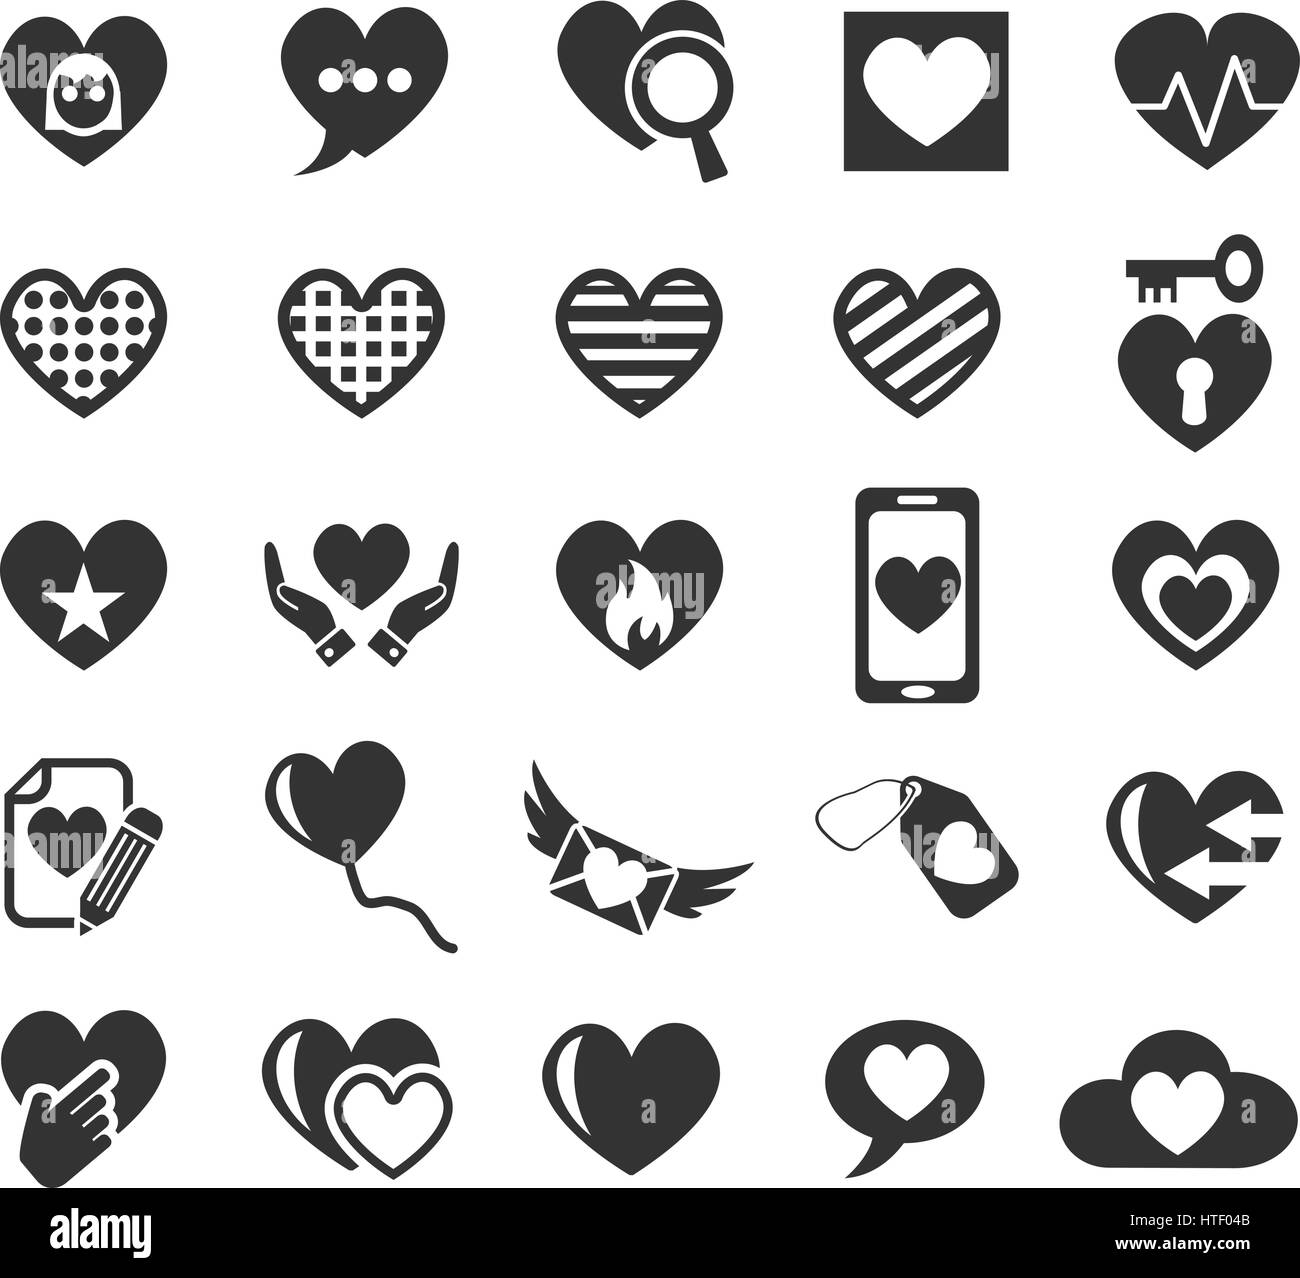 heart love web icons for user interface design - Stock Image